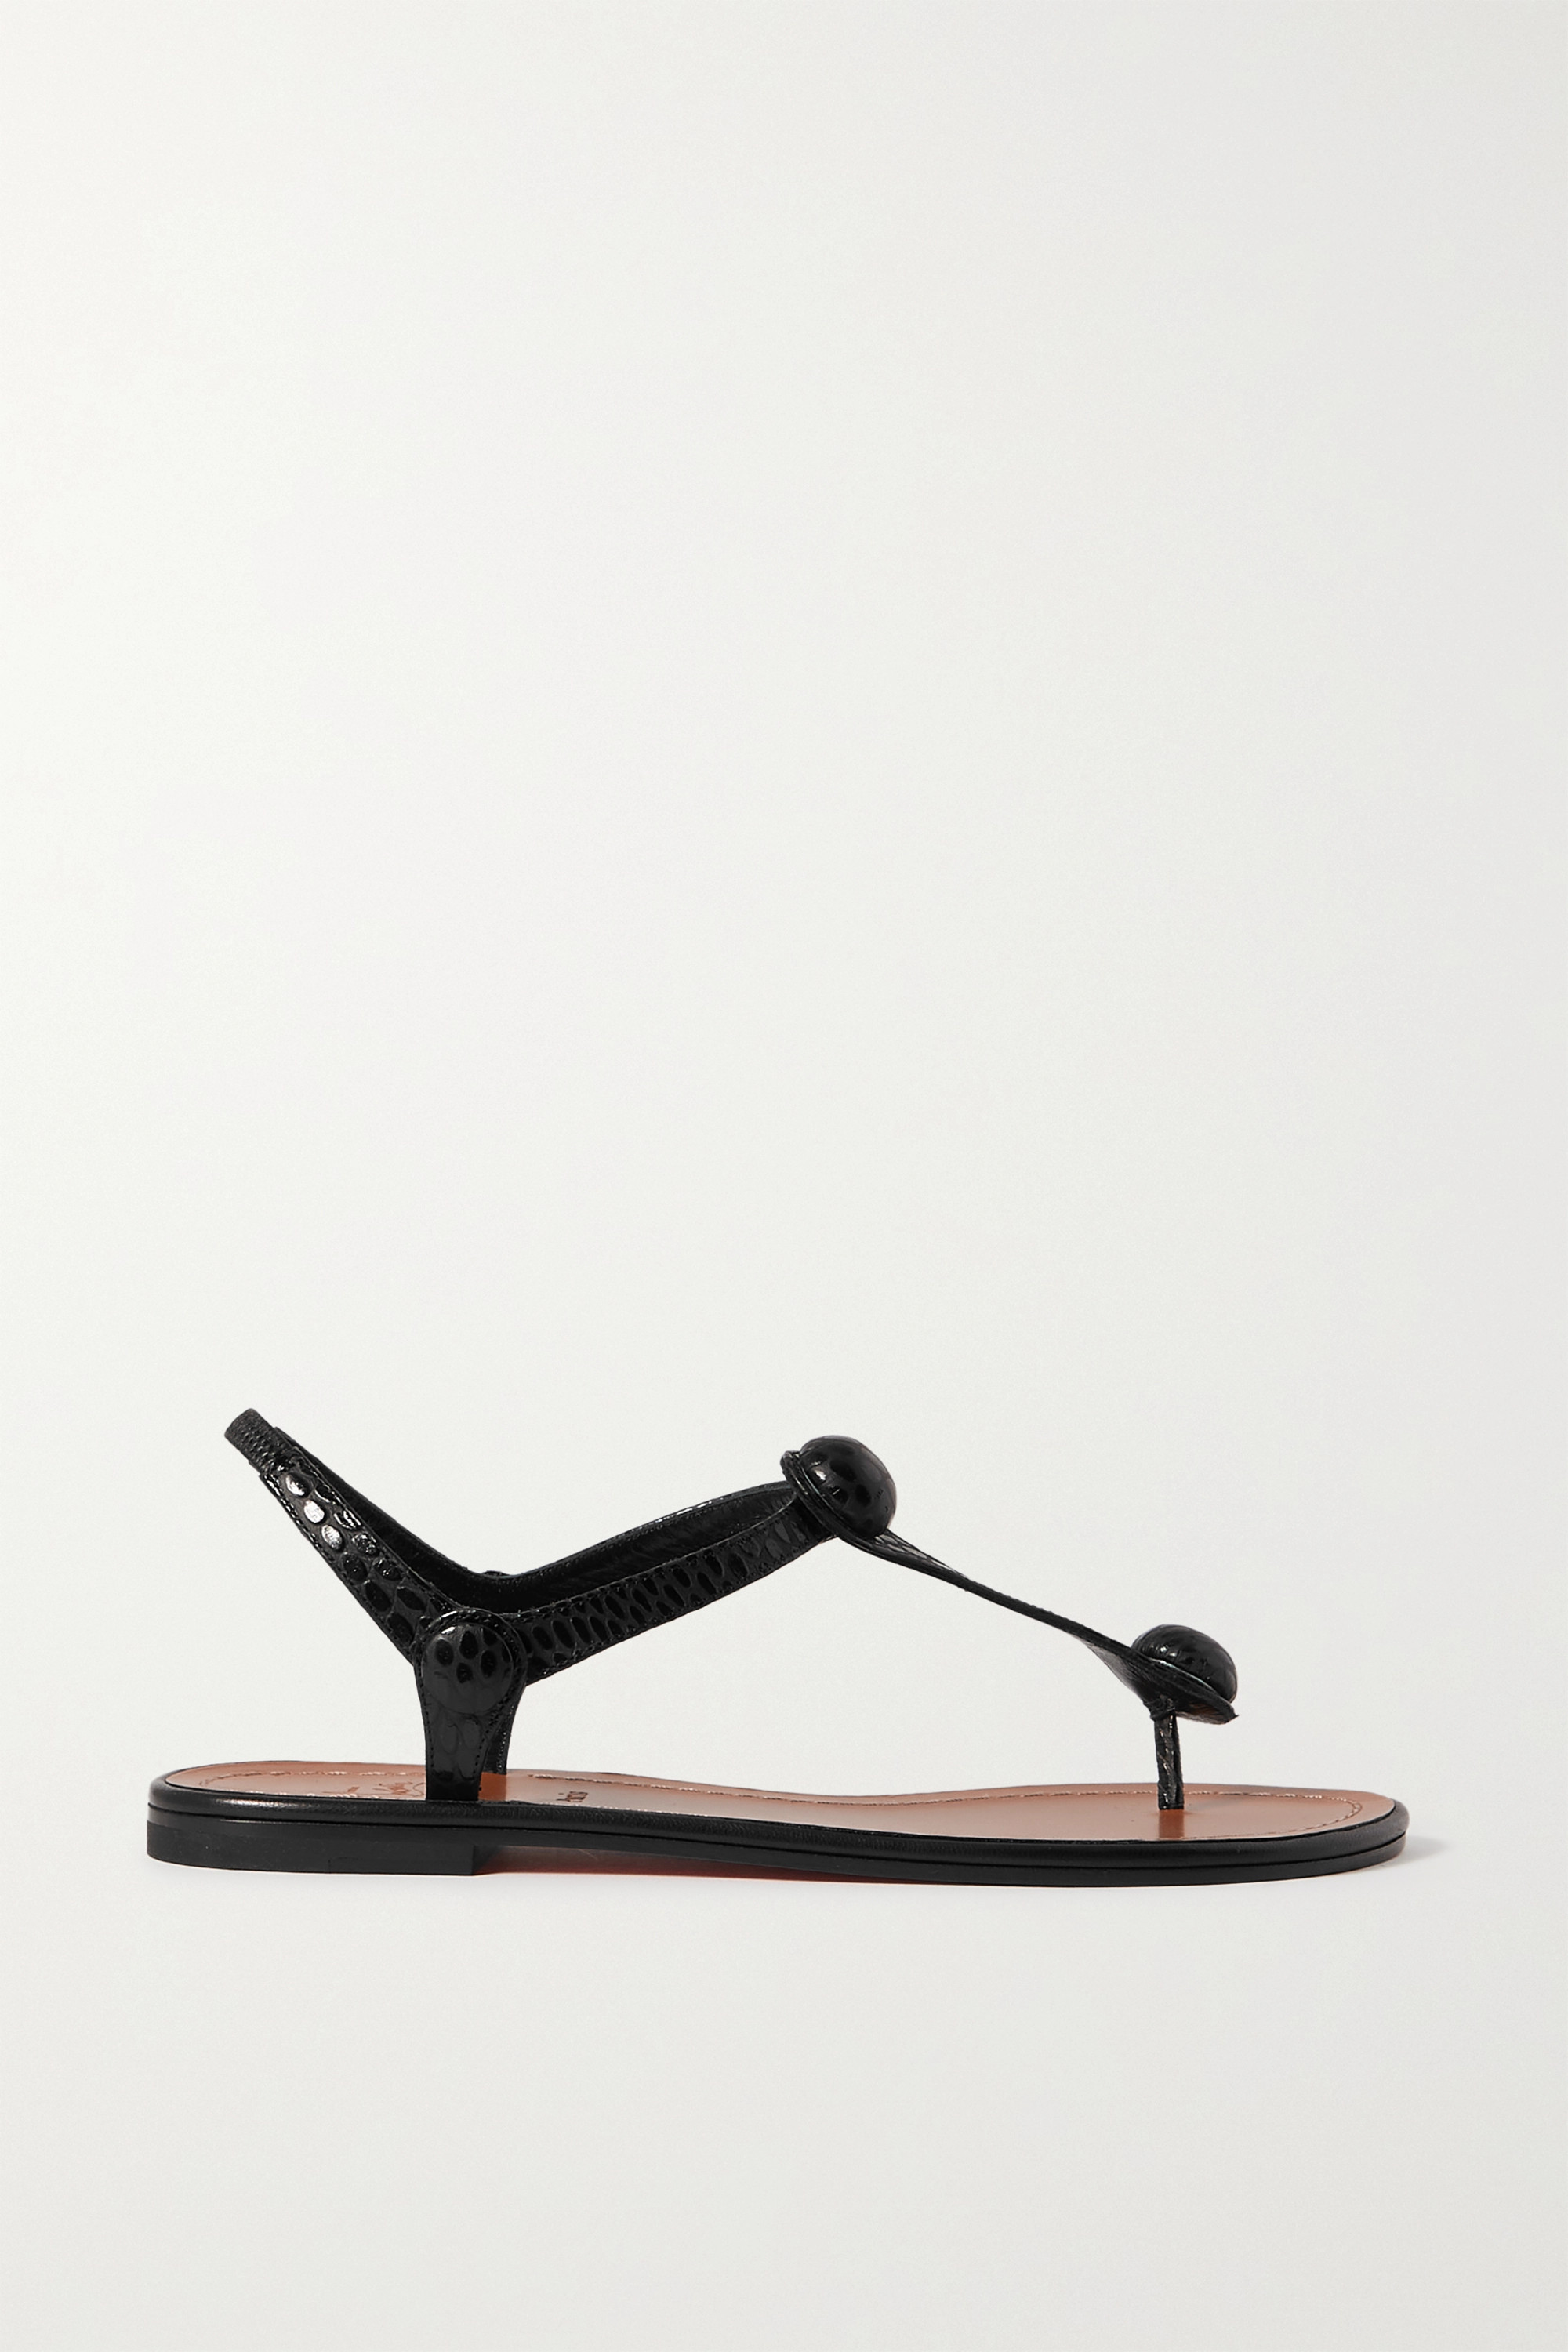 CHRISTIAN LOUBOUTIN Embellished croc-effect leather sandals